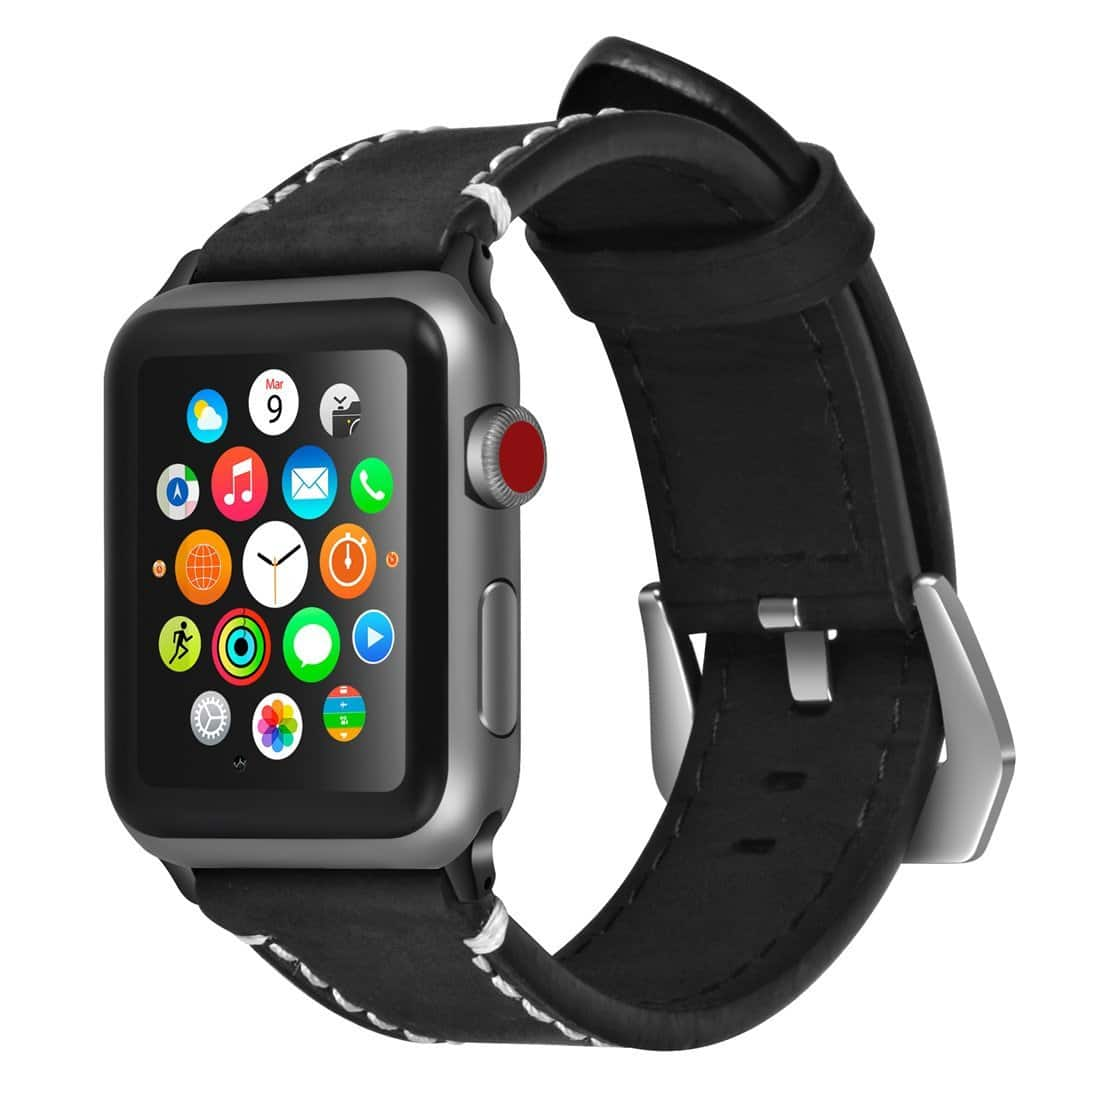 Apple Watch 38mm/42mm Genuine Leather Bands 50% Off - $4.99